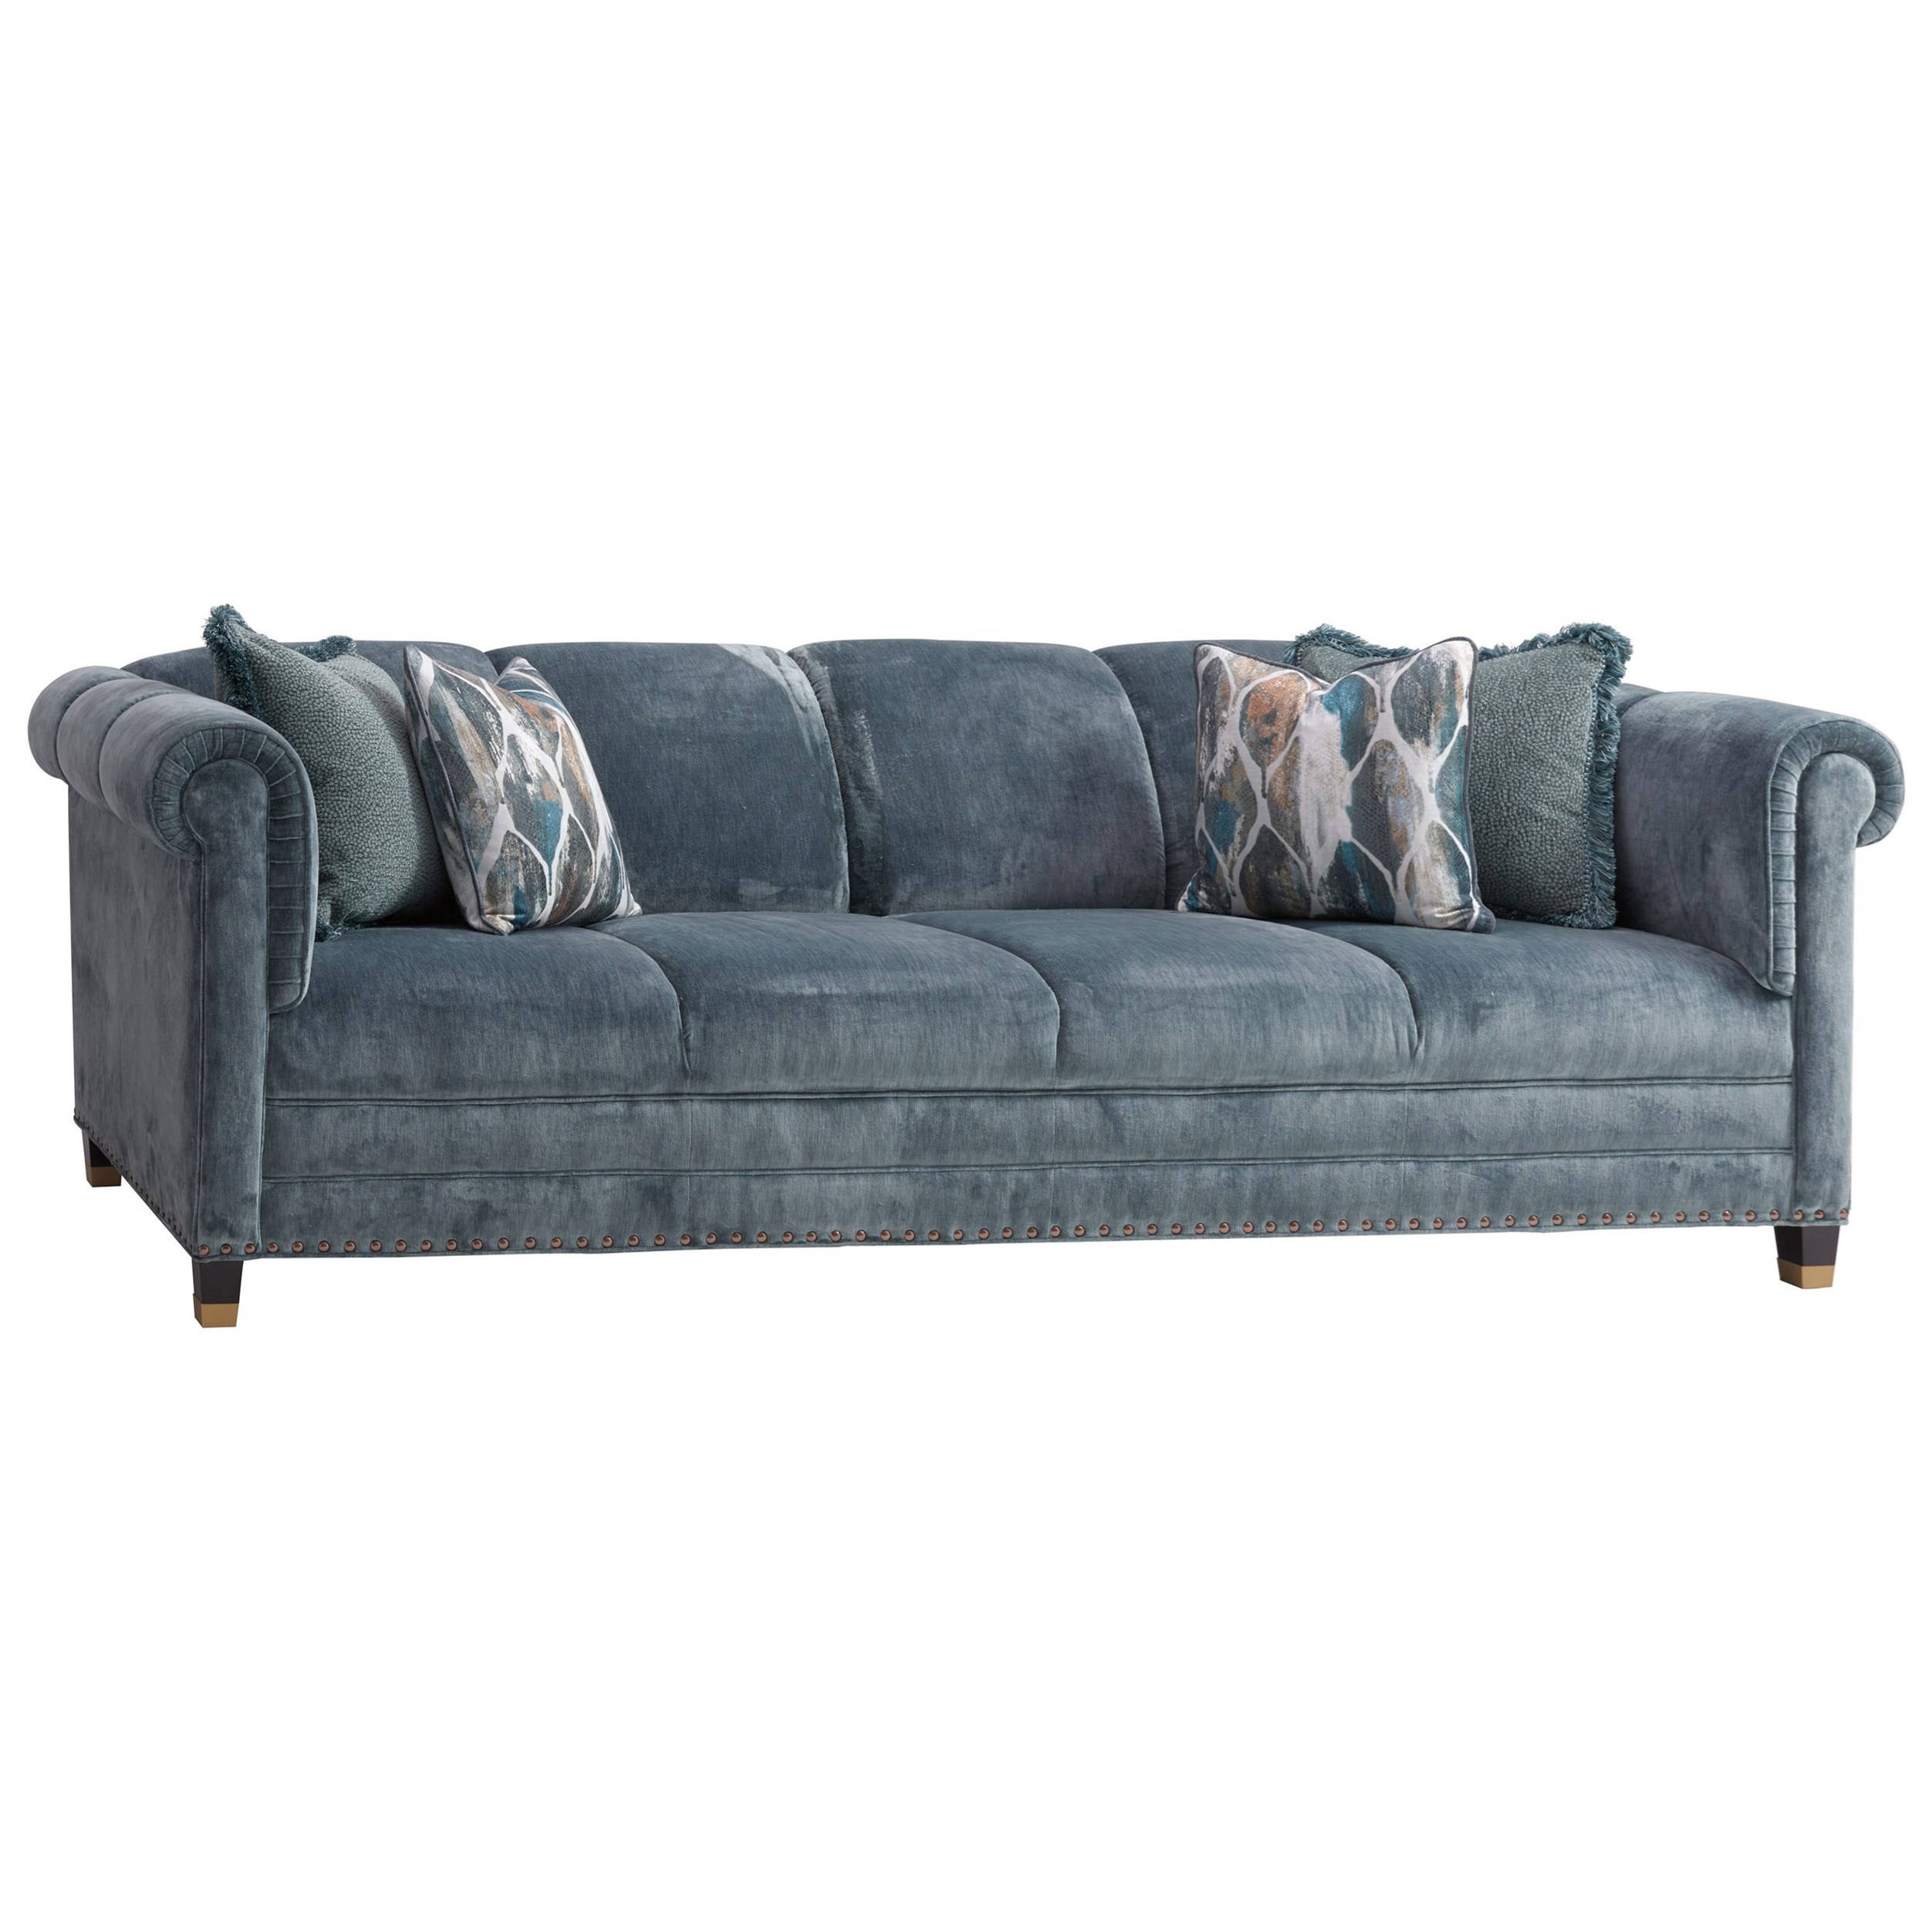 Carlyle Springfield Sofa by Lexington at Baer's Furniture